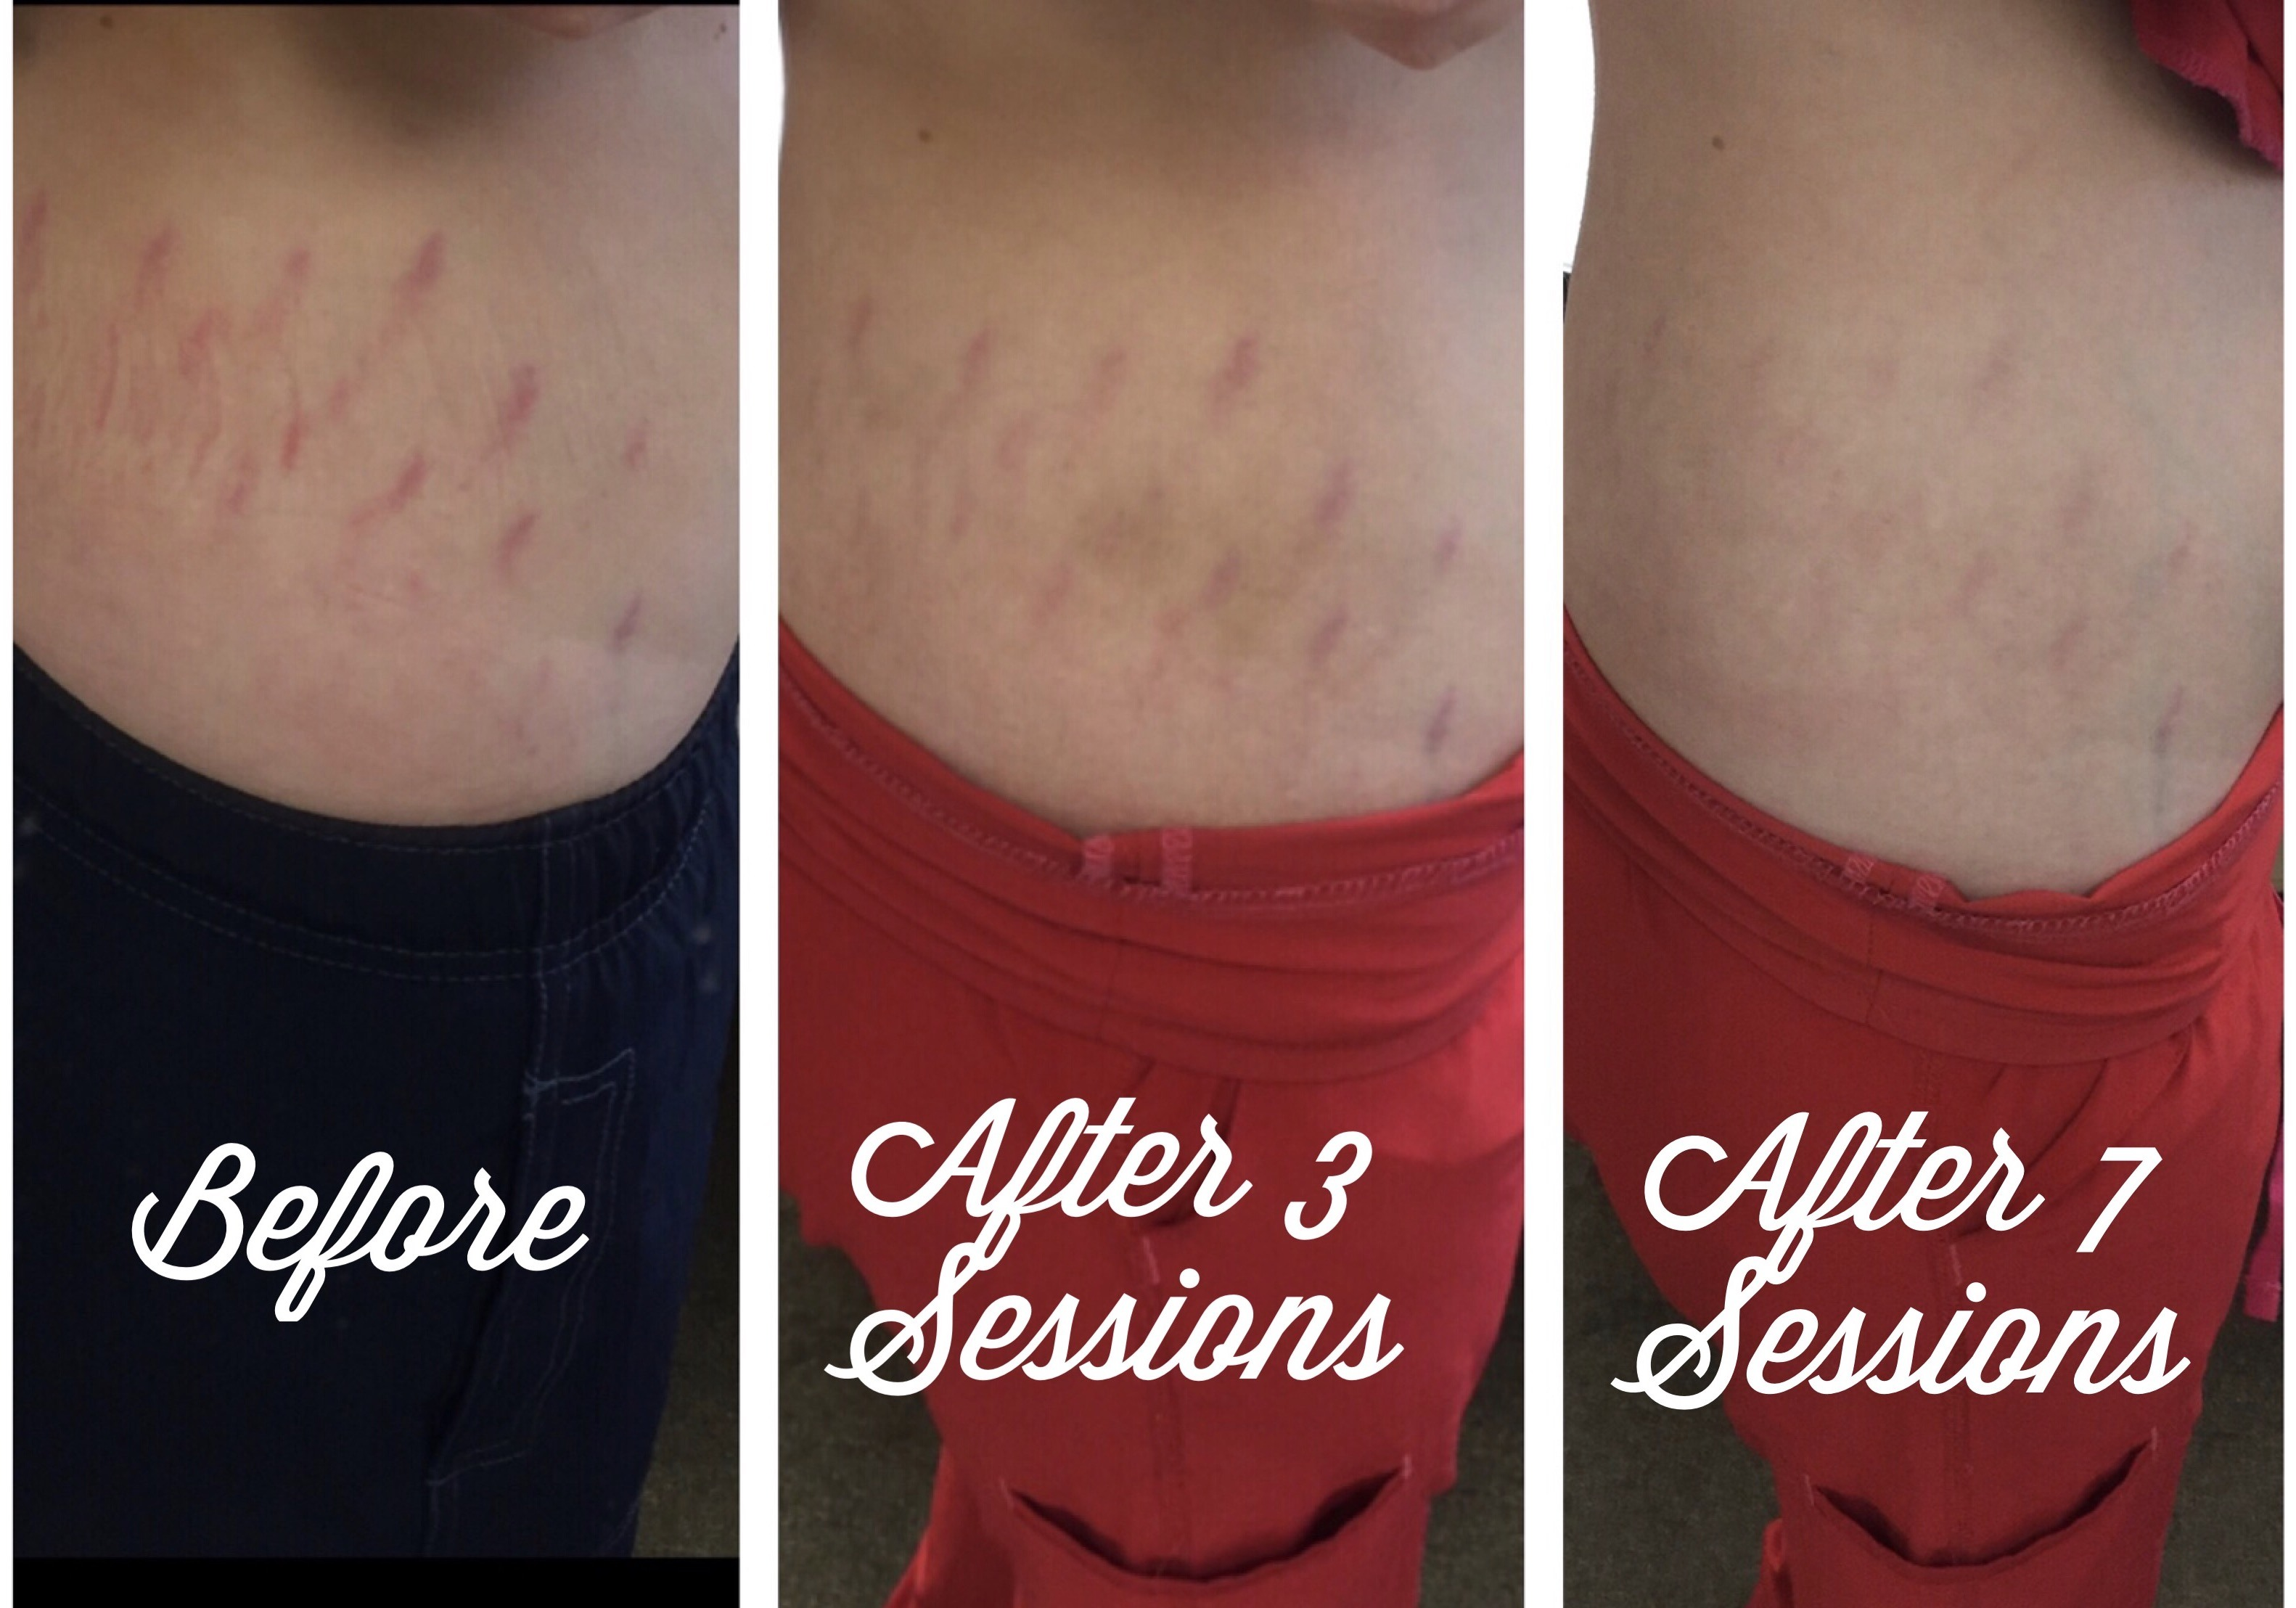 microneedling on stretch marks, before and after, plastic surgery affiliates, nashville, tn